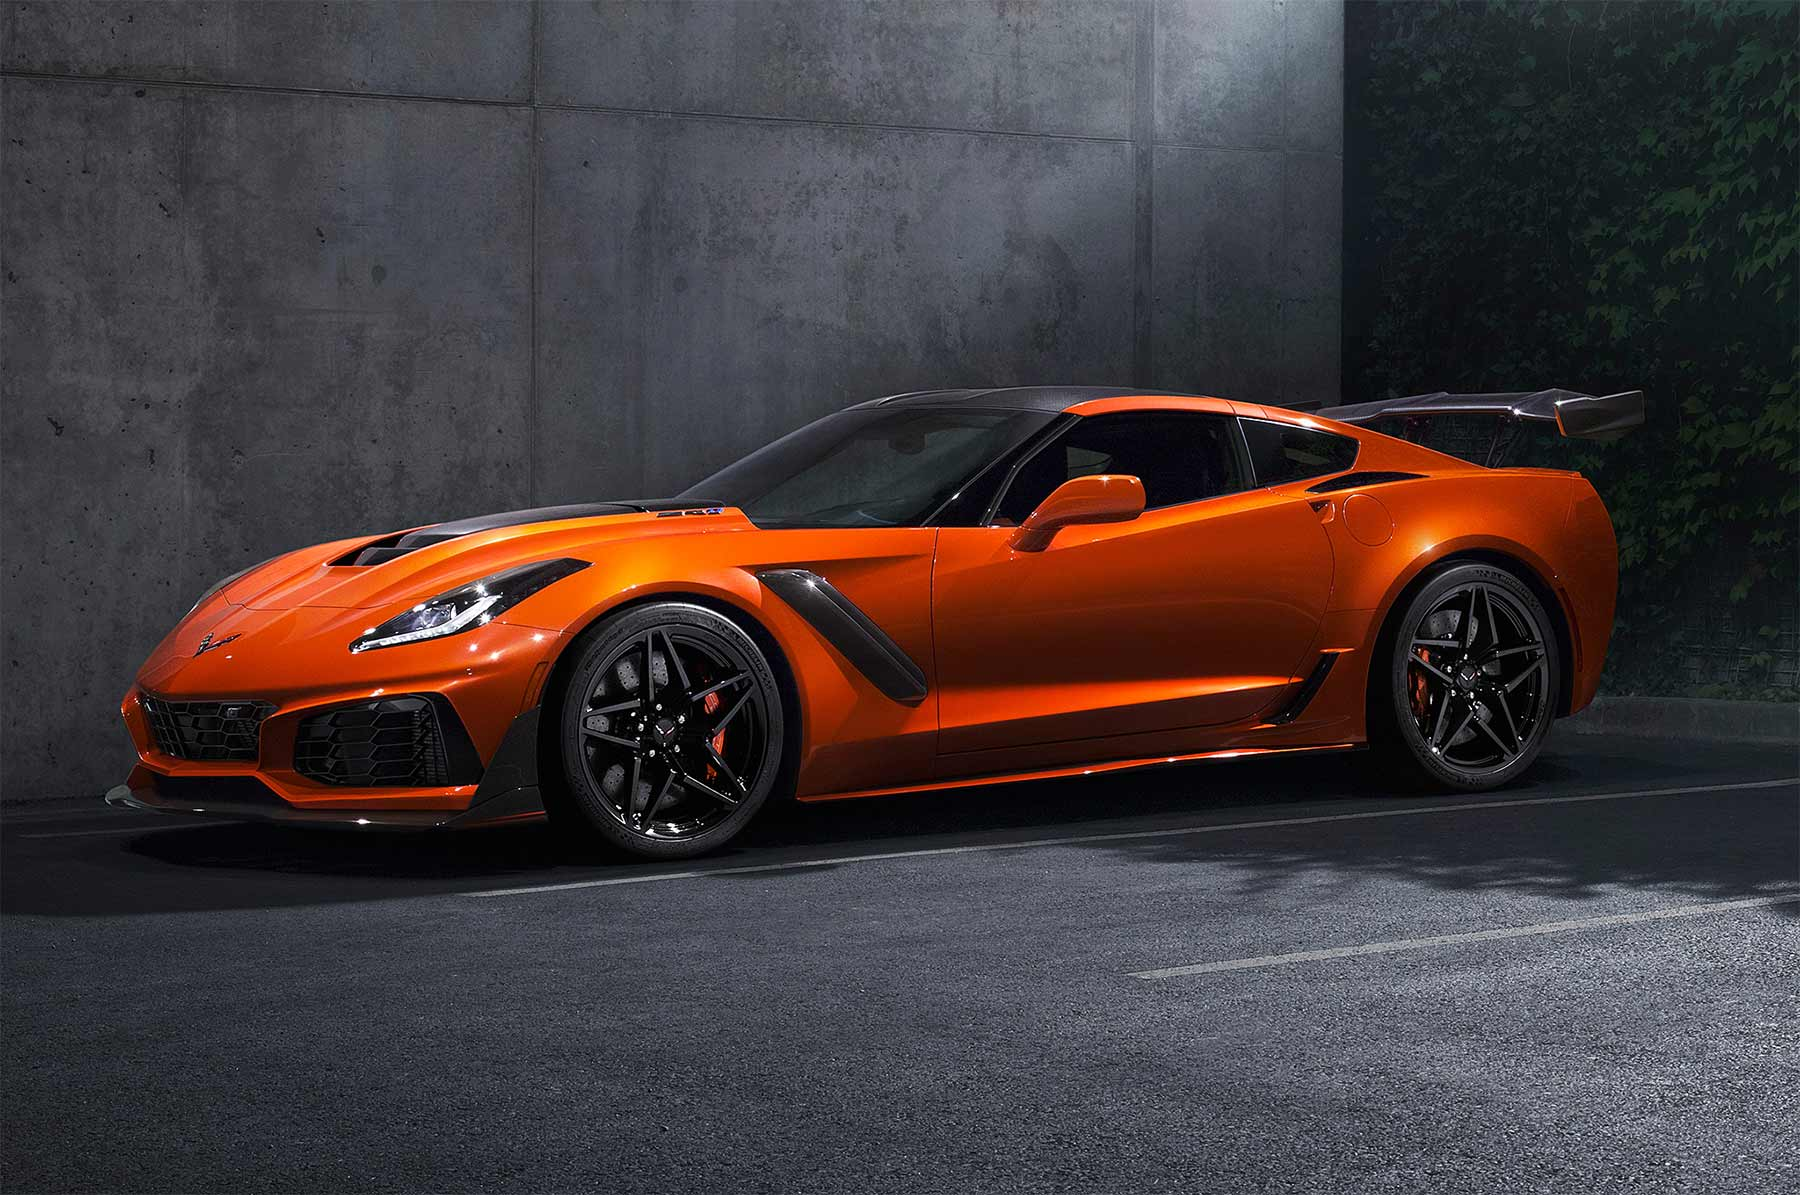 2019 Chevy Corvette ZR1 2019-Chevy-Corvette-ZR1_01